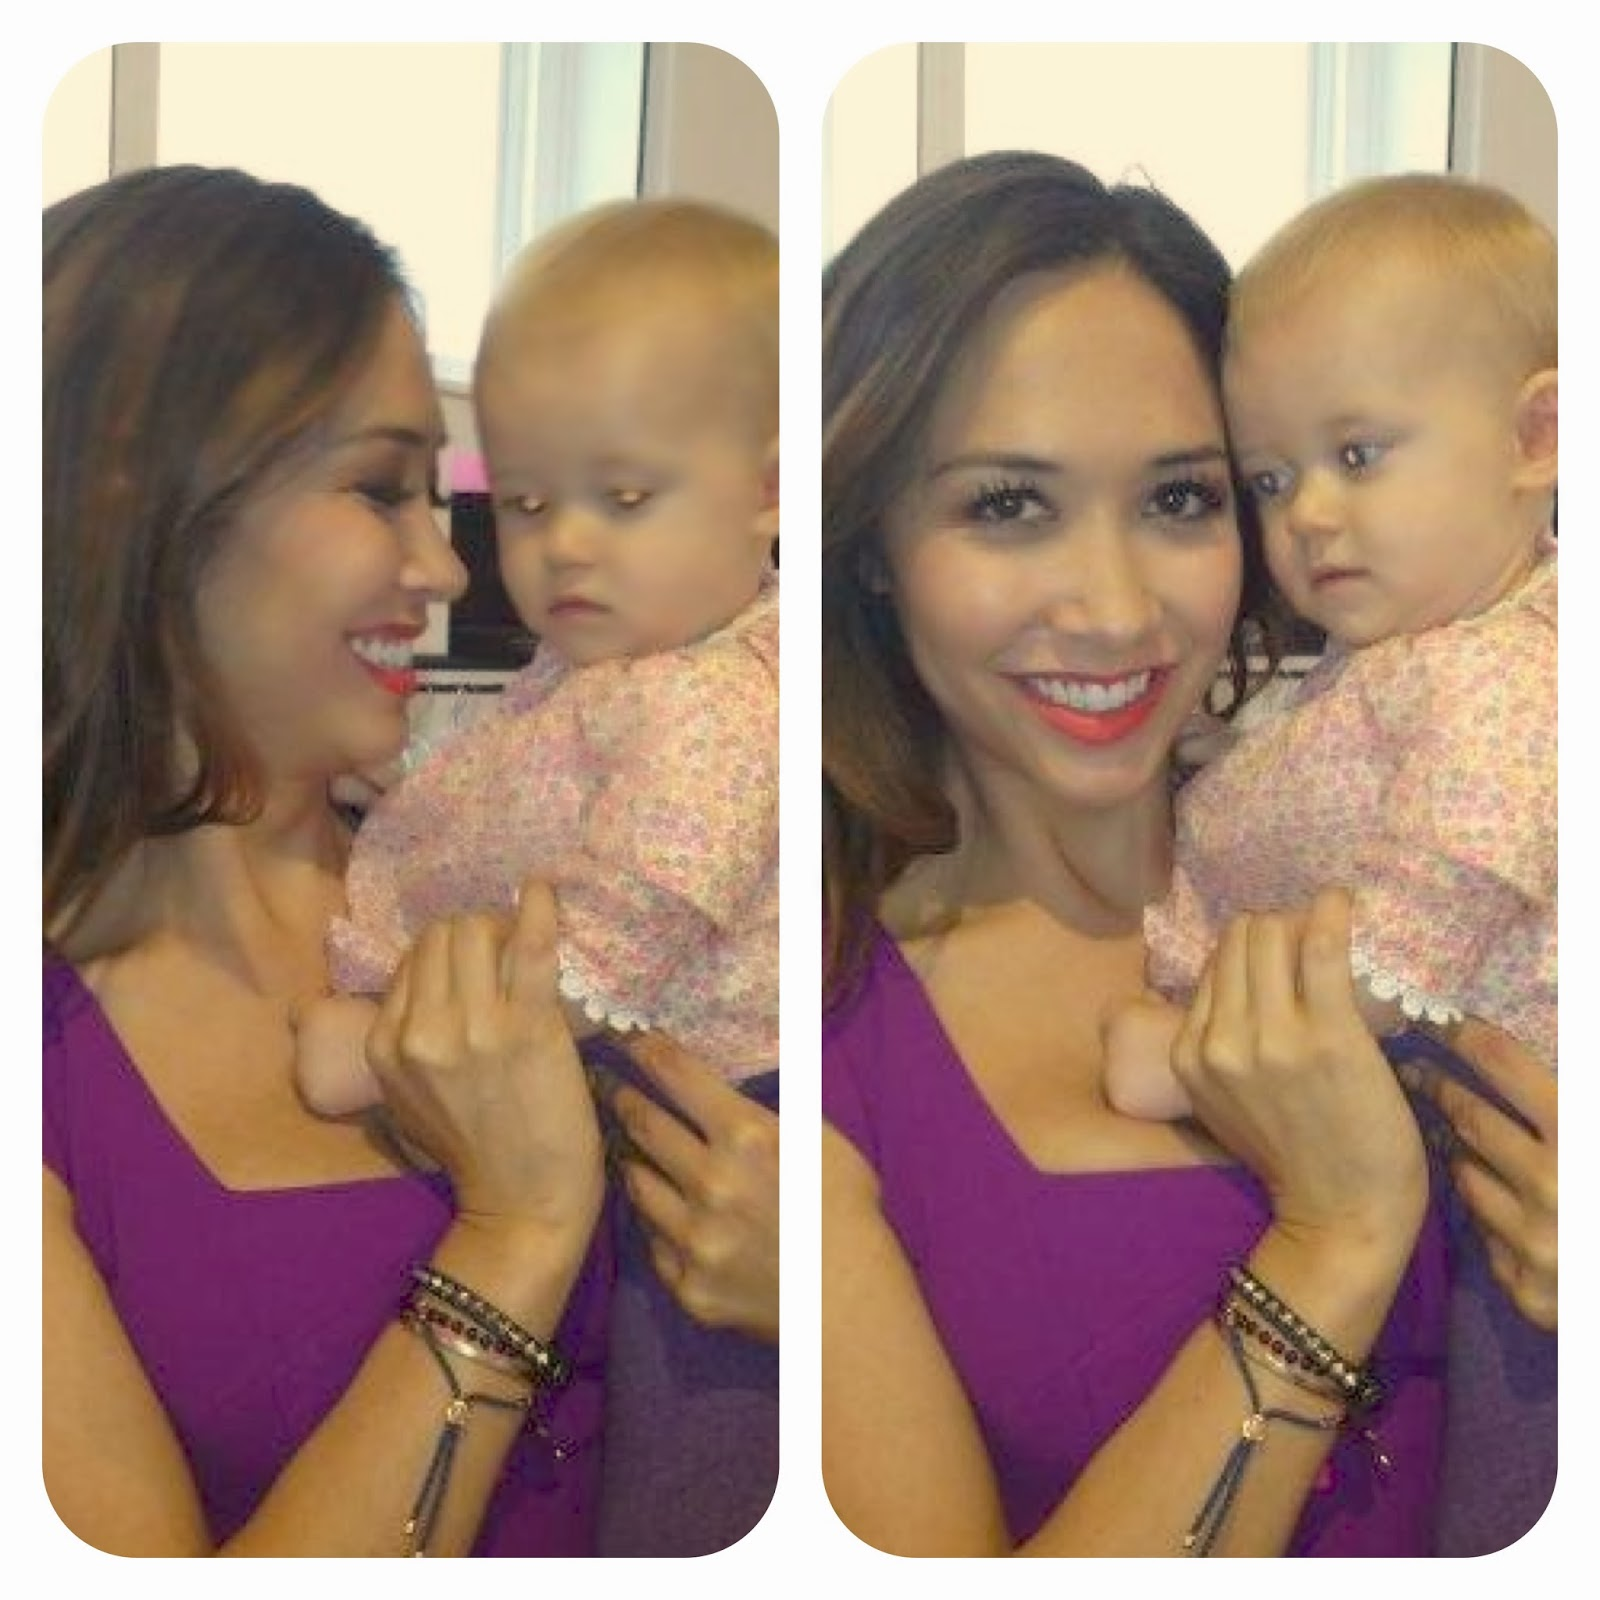 mamasVIB | V. I. BABYMAMAS: Why Myleene Klass is one talented mum - and how you can show you are too!, V. I. BABYMAMAS: Why Myleene Klass is one talented mum - and how you can show you are too! | myeline Klass | little woods | mothercrae | fashion | style | talented mums | competition | twitter comp | mothers day | mamasVIB | comp | bonita Turner | myeline | singer | baby K | video comp | pregnant | maxi dress |sexy | red dress | coleen rooney | style